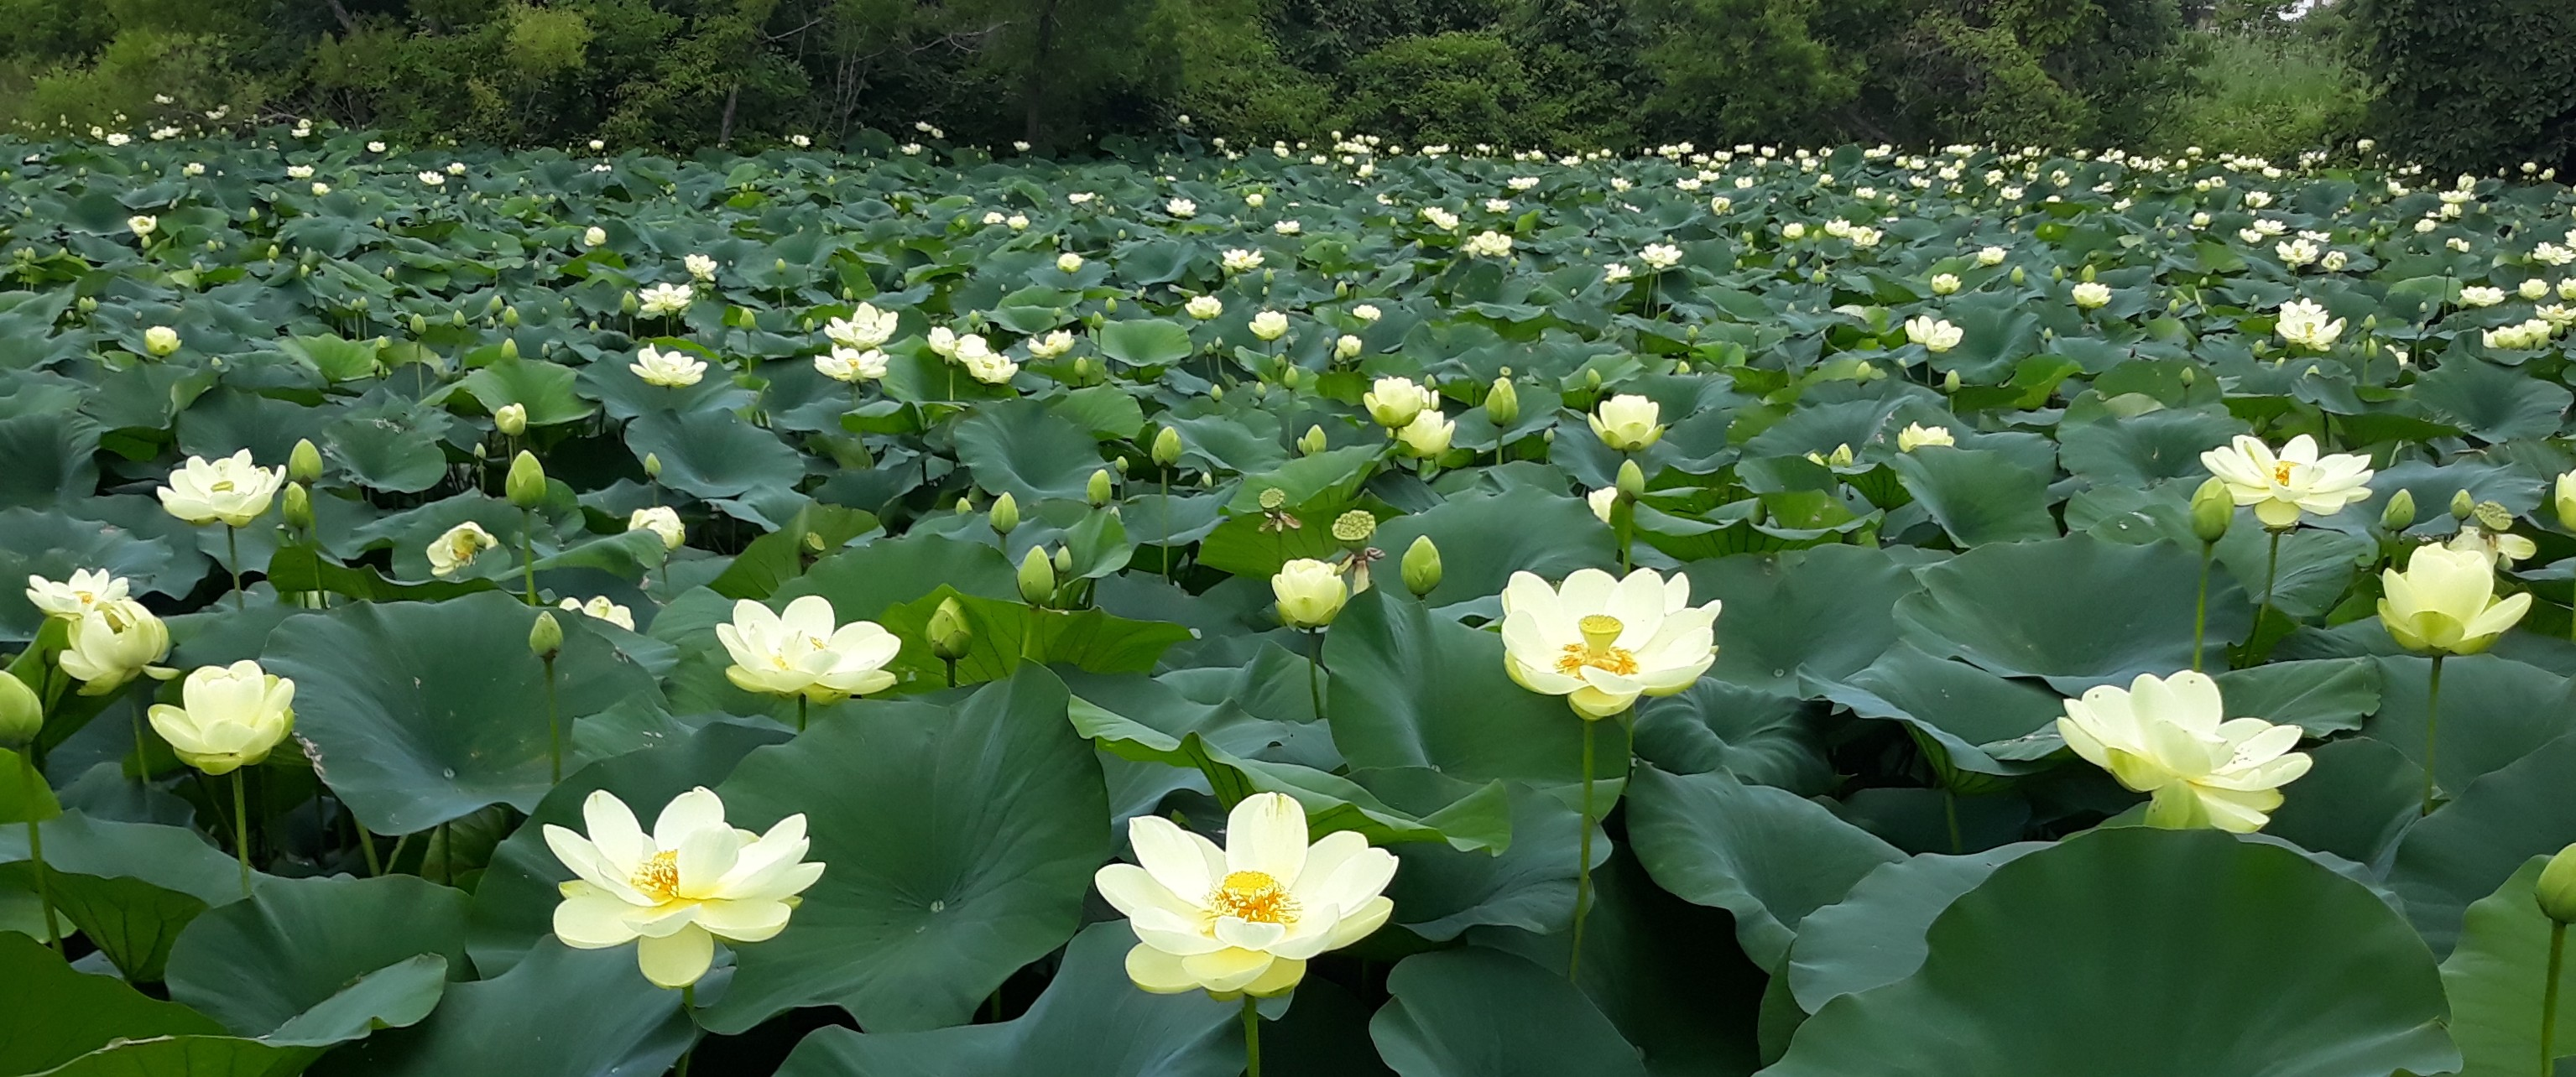 pond covered in yellow lotus